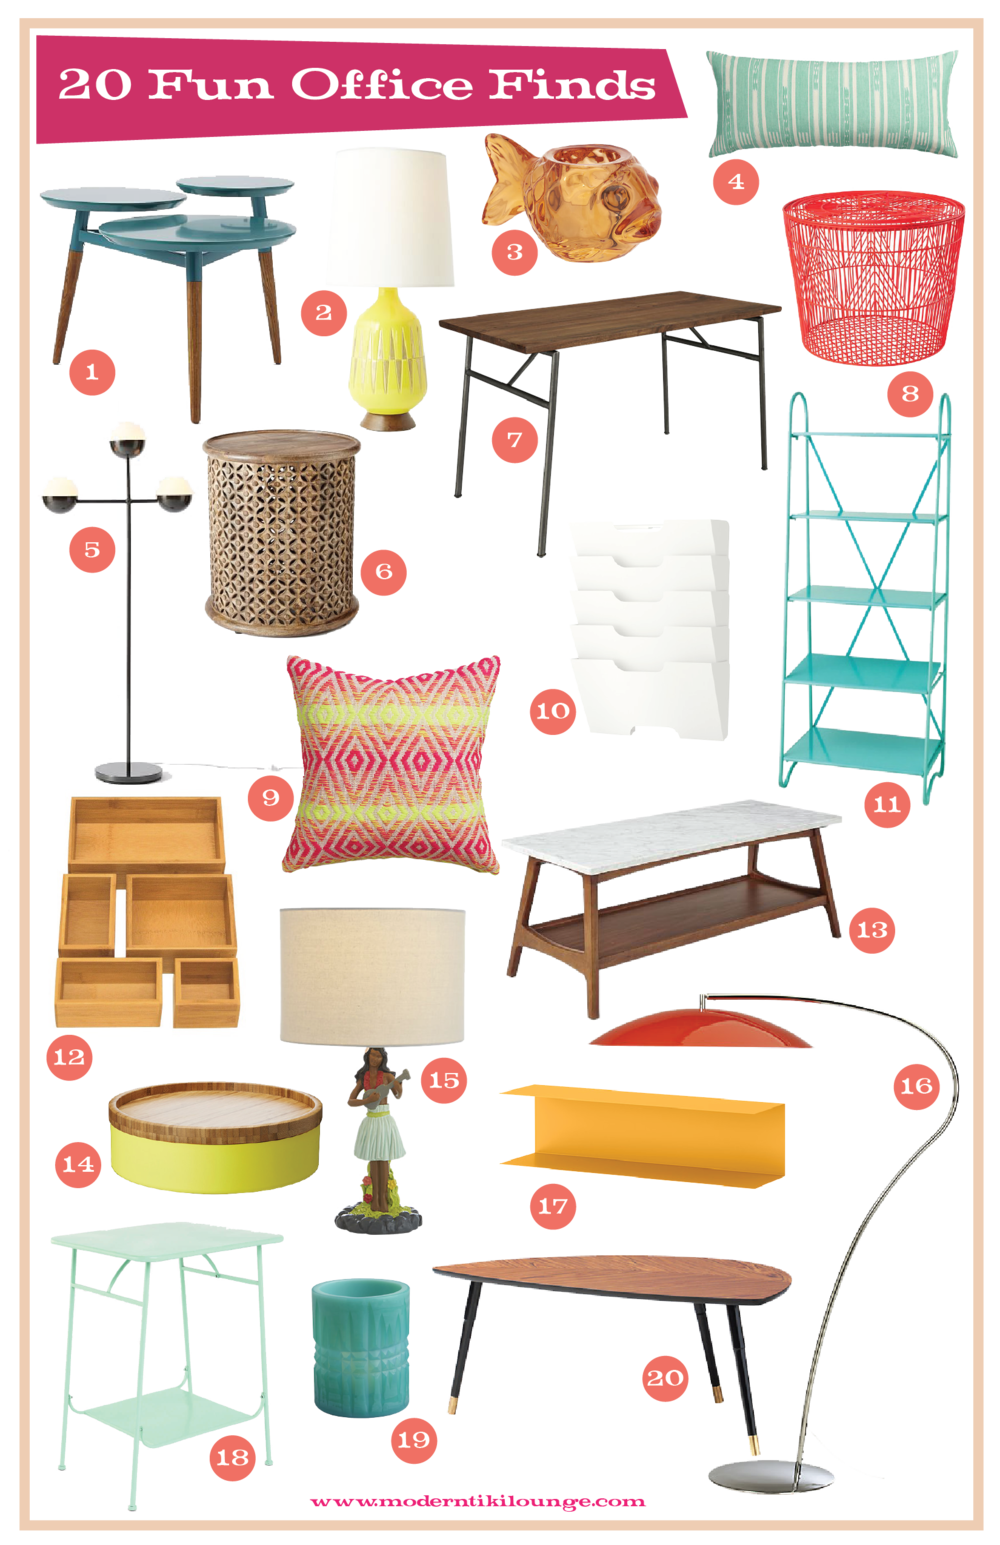 1.  clover coffee table  | 2.  MID-CENTURY TABLE LAMP - bottle  | 3.  FIN CANDLE HOLDER  | 4.  IKAT AQUA PILLOW  | 5.  kate spade saturday globe lamp  | 6.  carved wood side table  | 7.  Lecture desk  | 8.  good vibe floor bin  | 9.  neon prism knit pillow  | 10.  kvissle wall magazine rack  | 11.  fifth floor shelf  | 12.  seville bamboo organizer boxes  | 13.  reeve mid-century rectangular coffee table  | 14.  valkand bowl and dish  | 15.  hula lamp  | 16.  atomic arc floor lamp  | 17.  botkyrka wall shelf  | 18.  factory side table  | 19.  hoth candle holder  | 20.  lovbacken coffee table